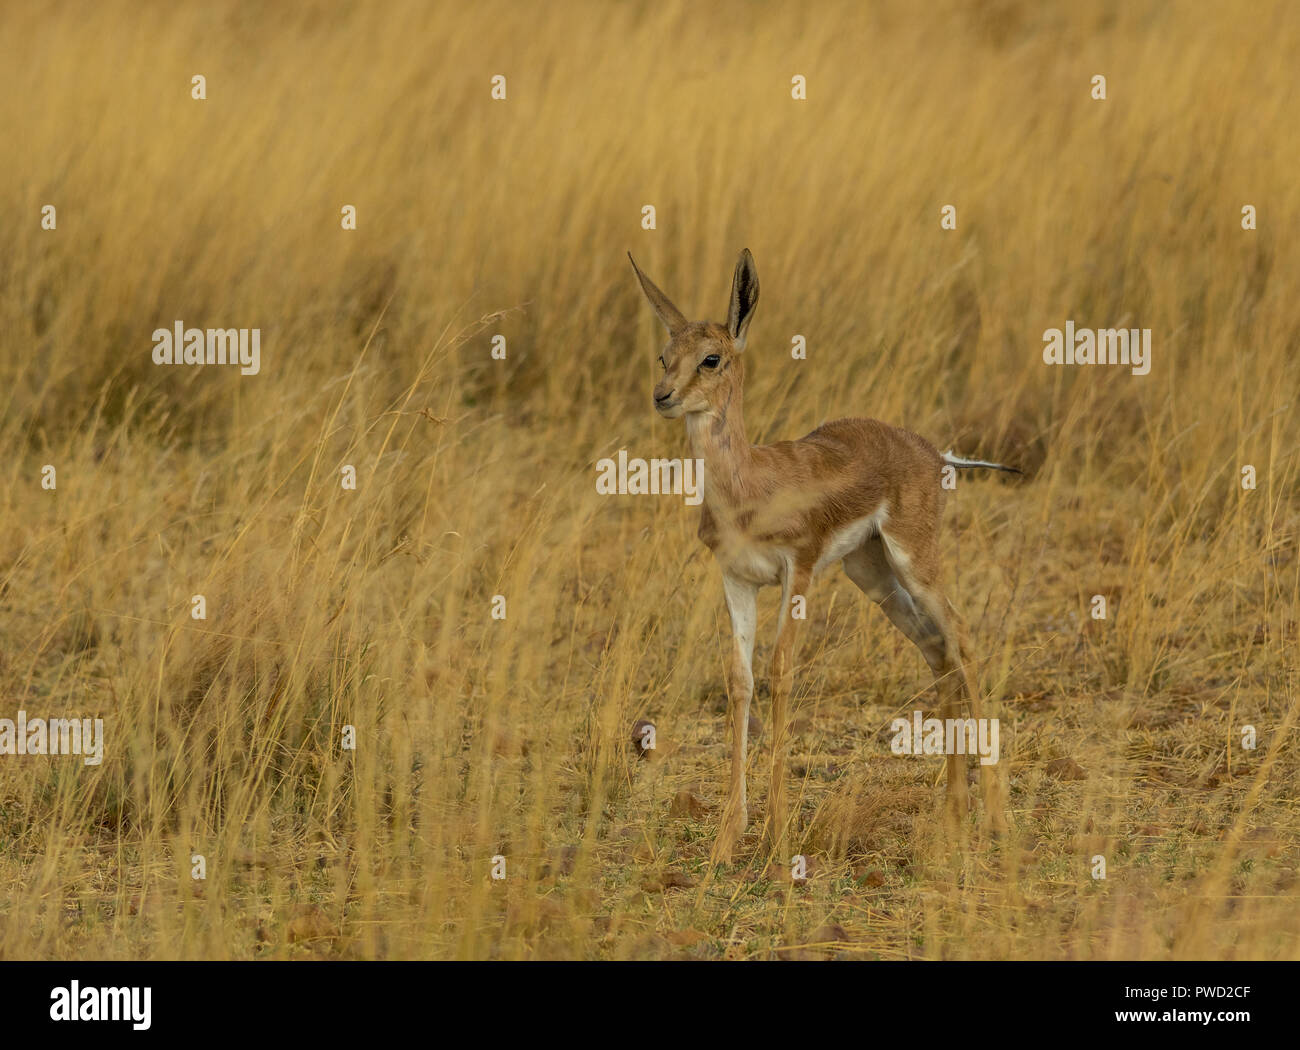 A young springbok calf hides in the grass on the African plains image with copy space in landscape format - Stock Image